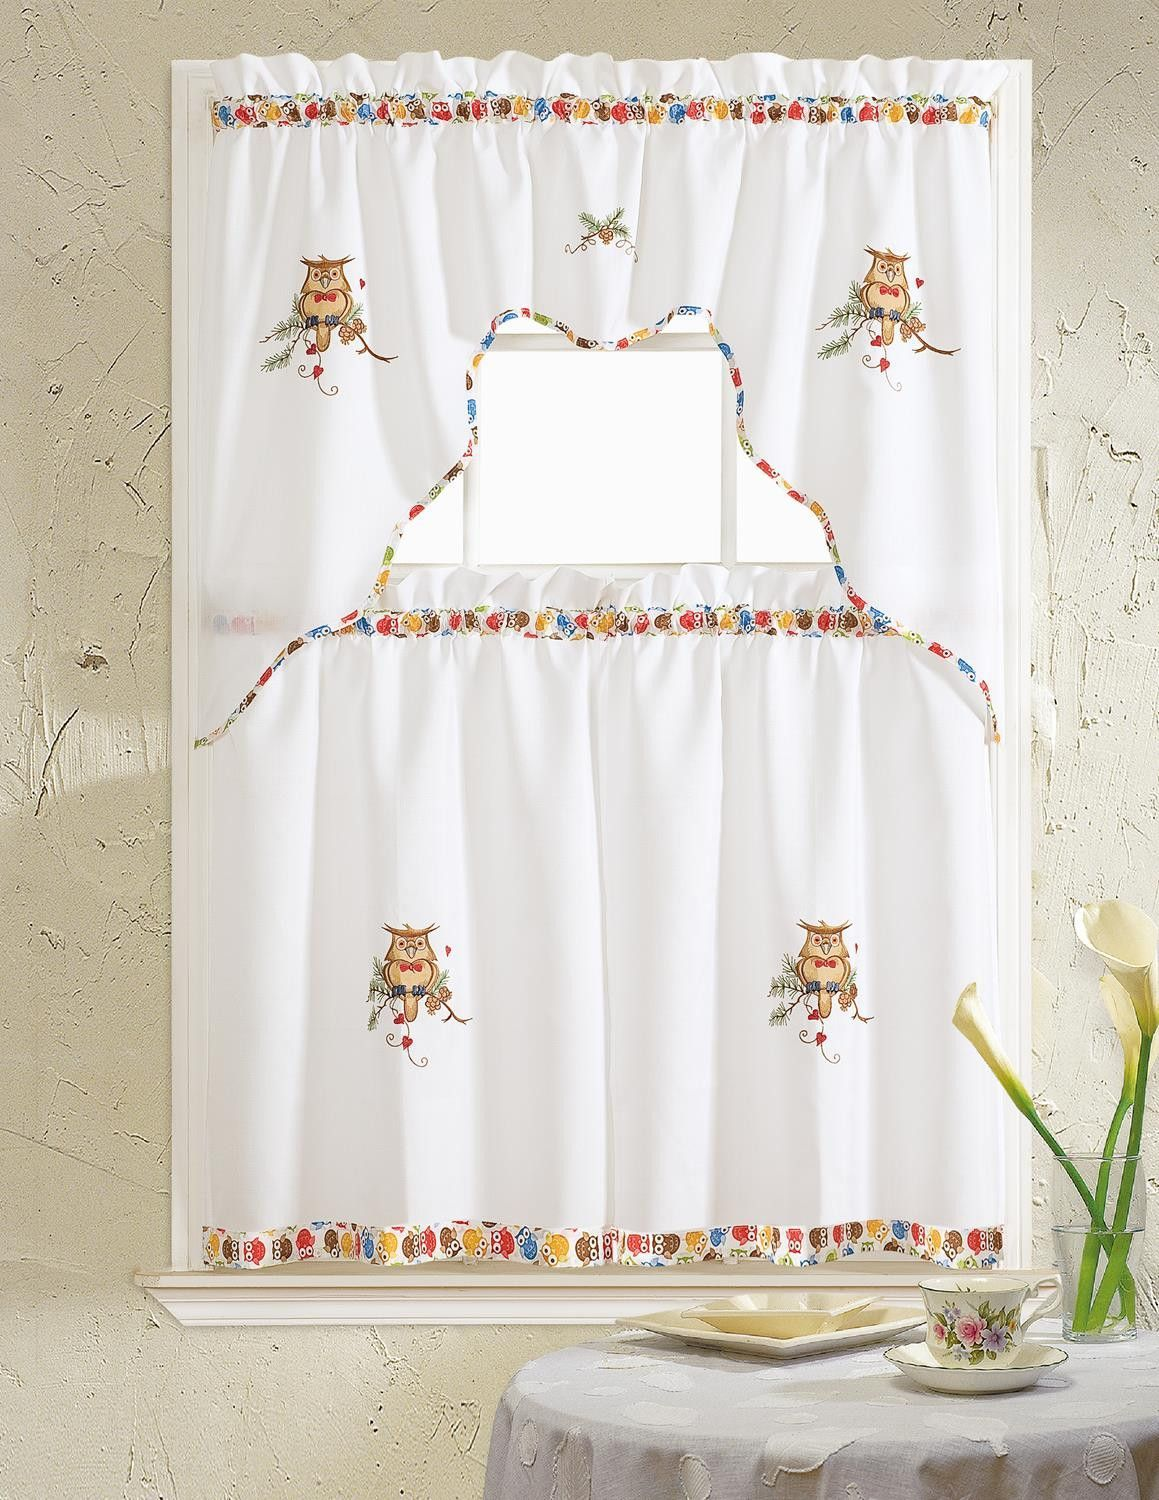 Grand Owl Embroidered Ruffle Kitchen Curtain Set Valance 60 X 14 Two Tiers 30 X 36 Kitchen Curtain Sets Curtains